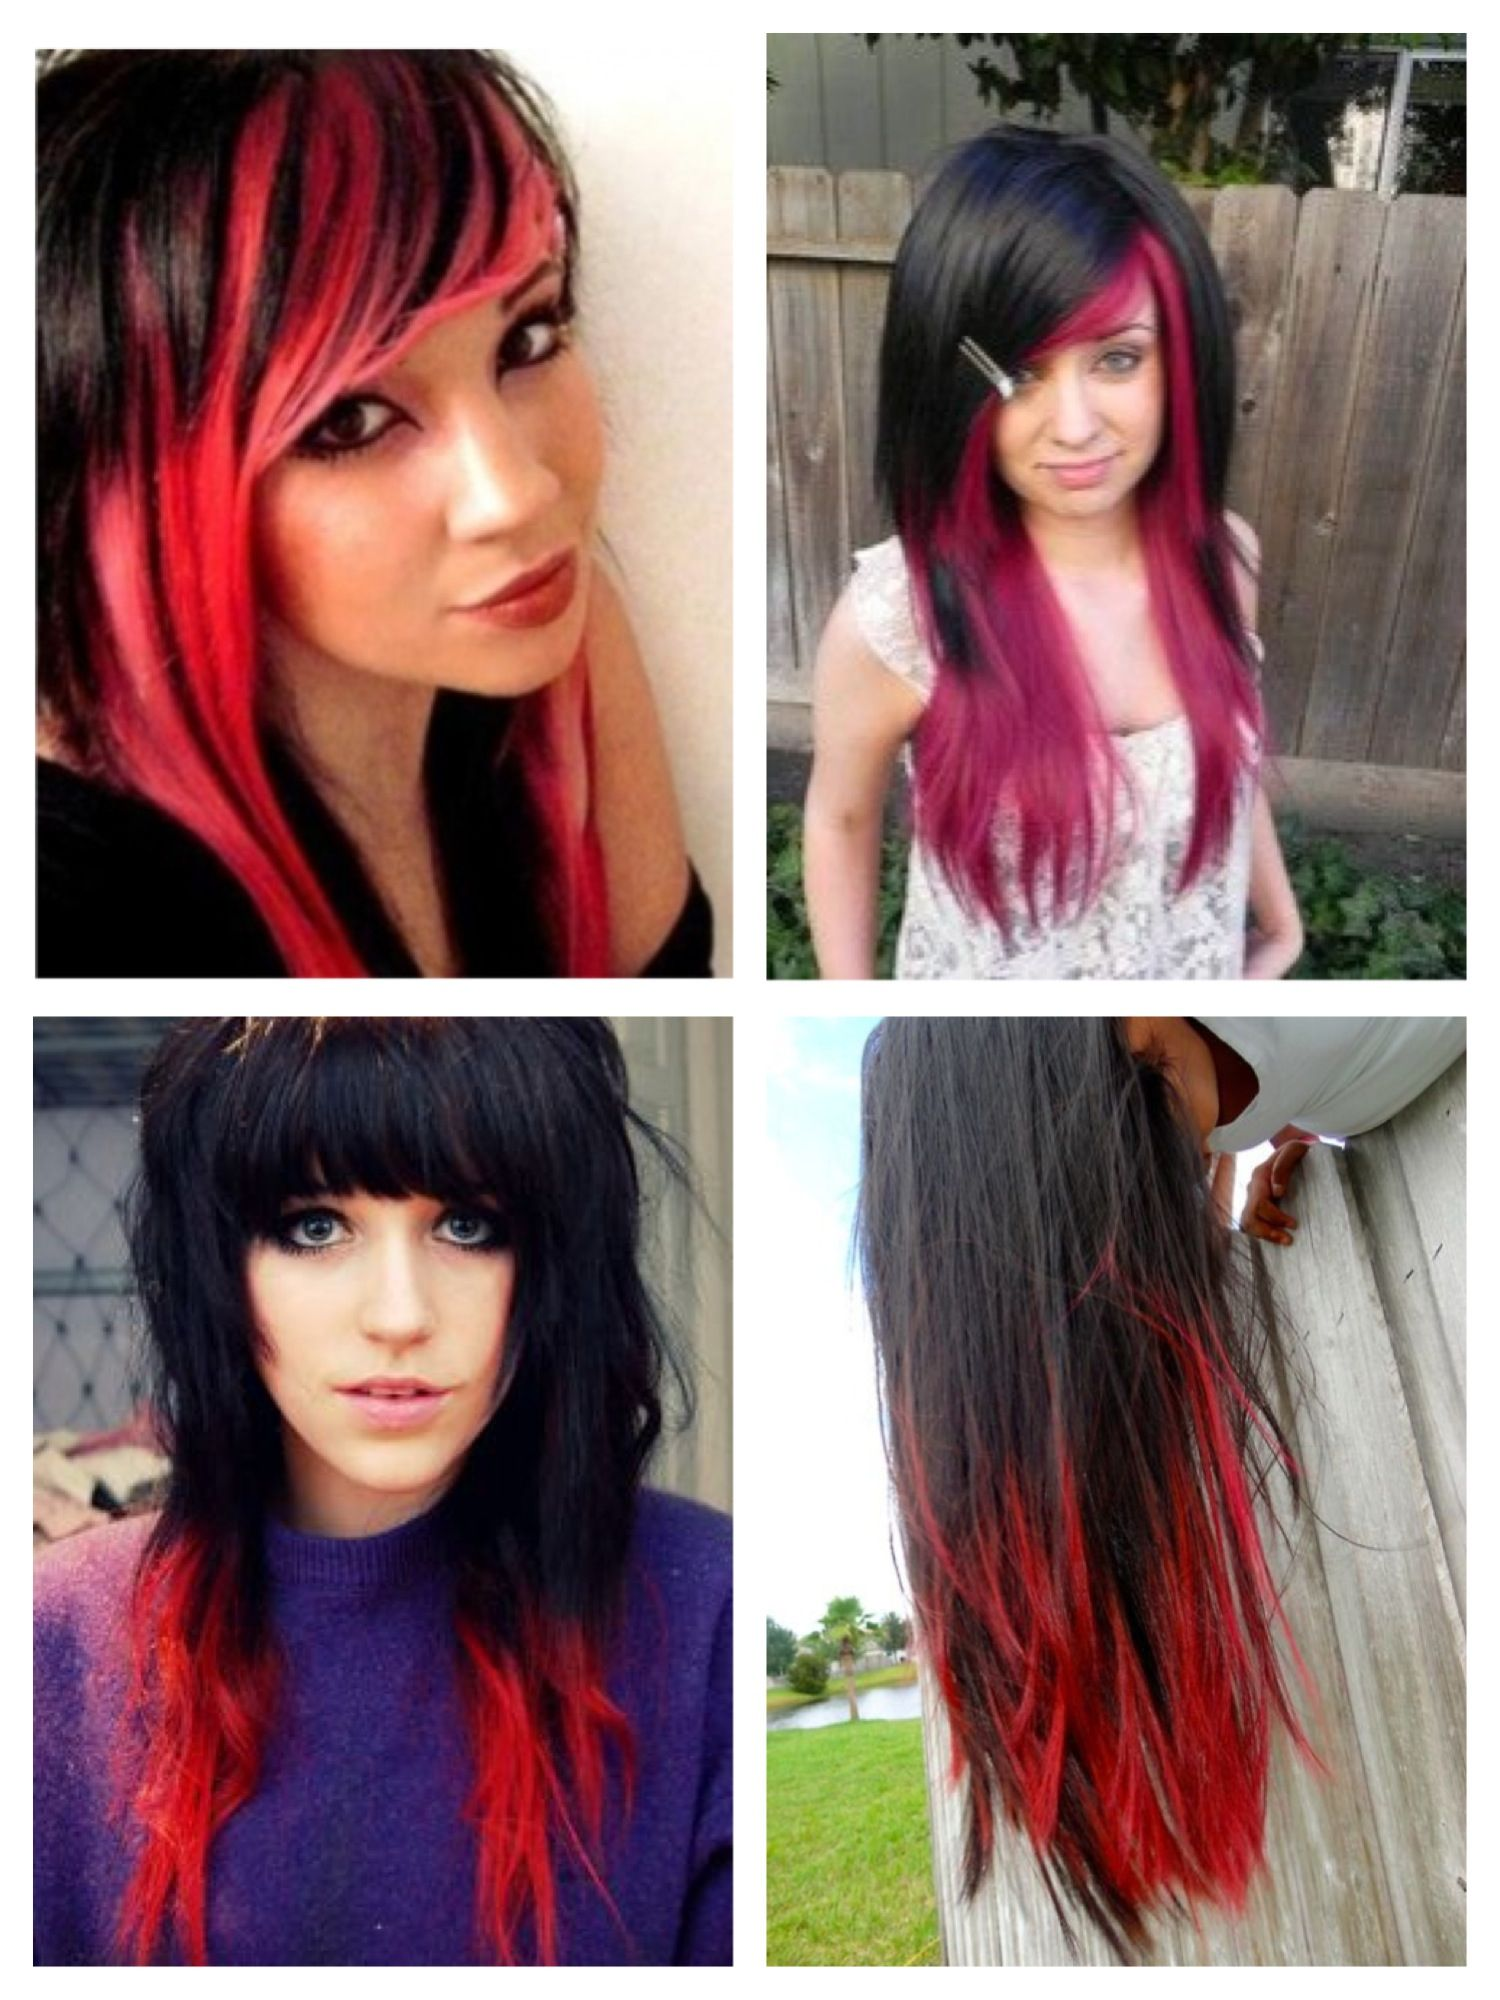 doing red again. not this hair style but red underneath my bangs